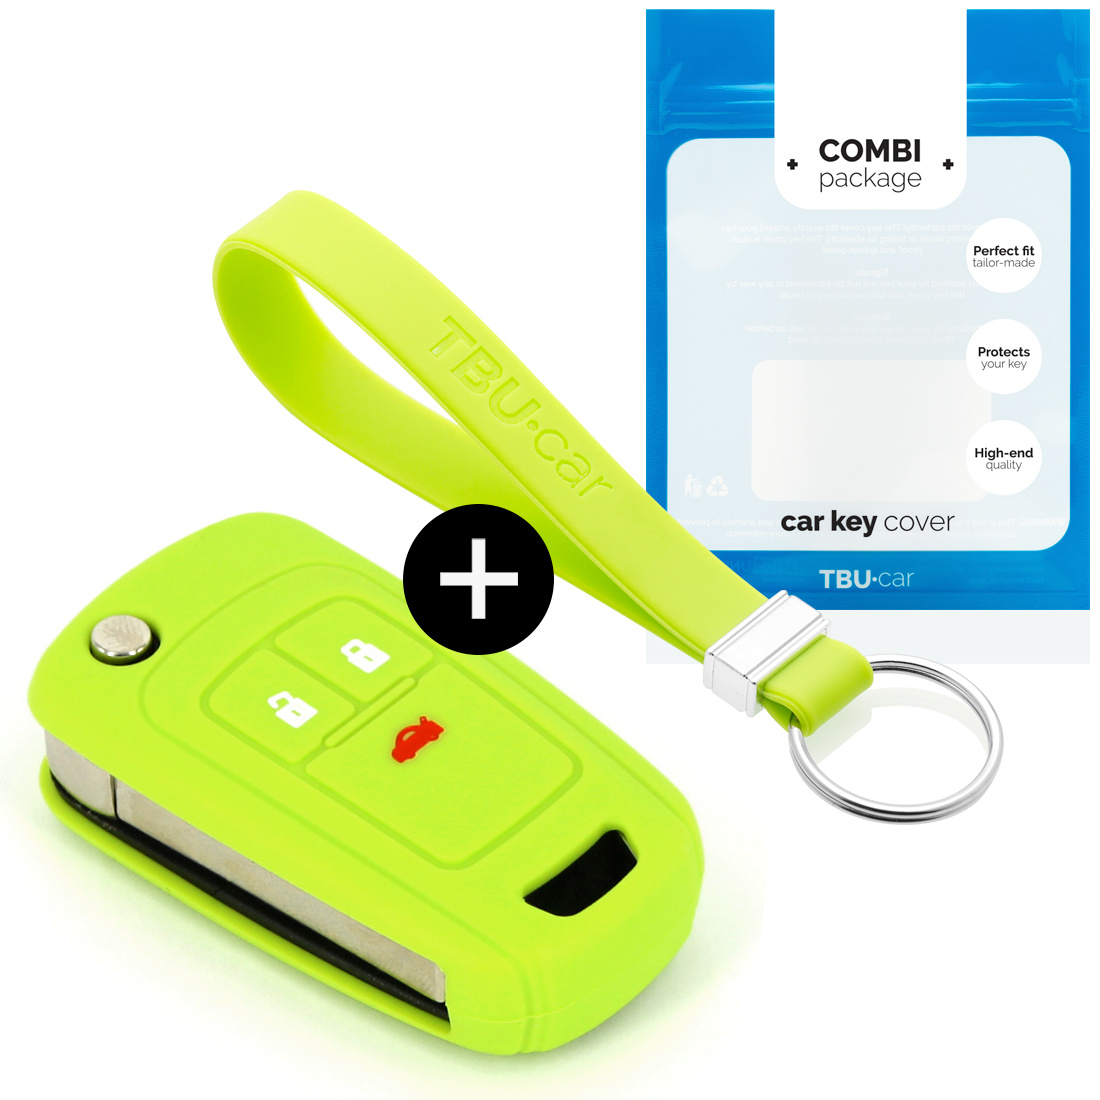 Chevrolet Car key cover - Silicone Protective Remote Key Shell - FOB Case Cover - Lime